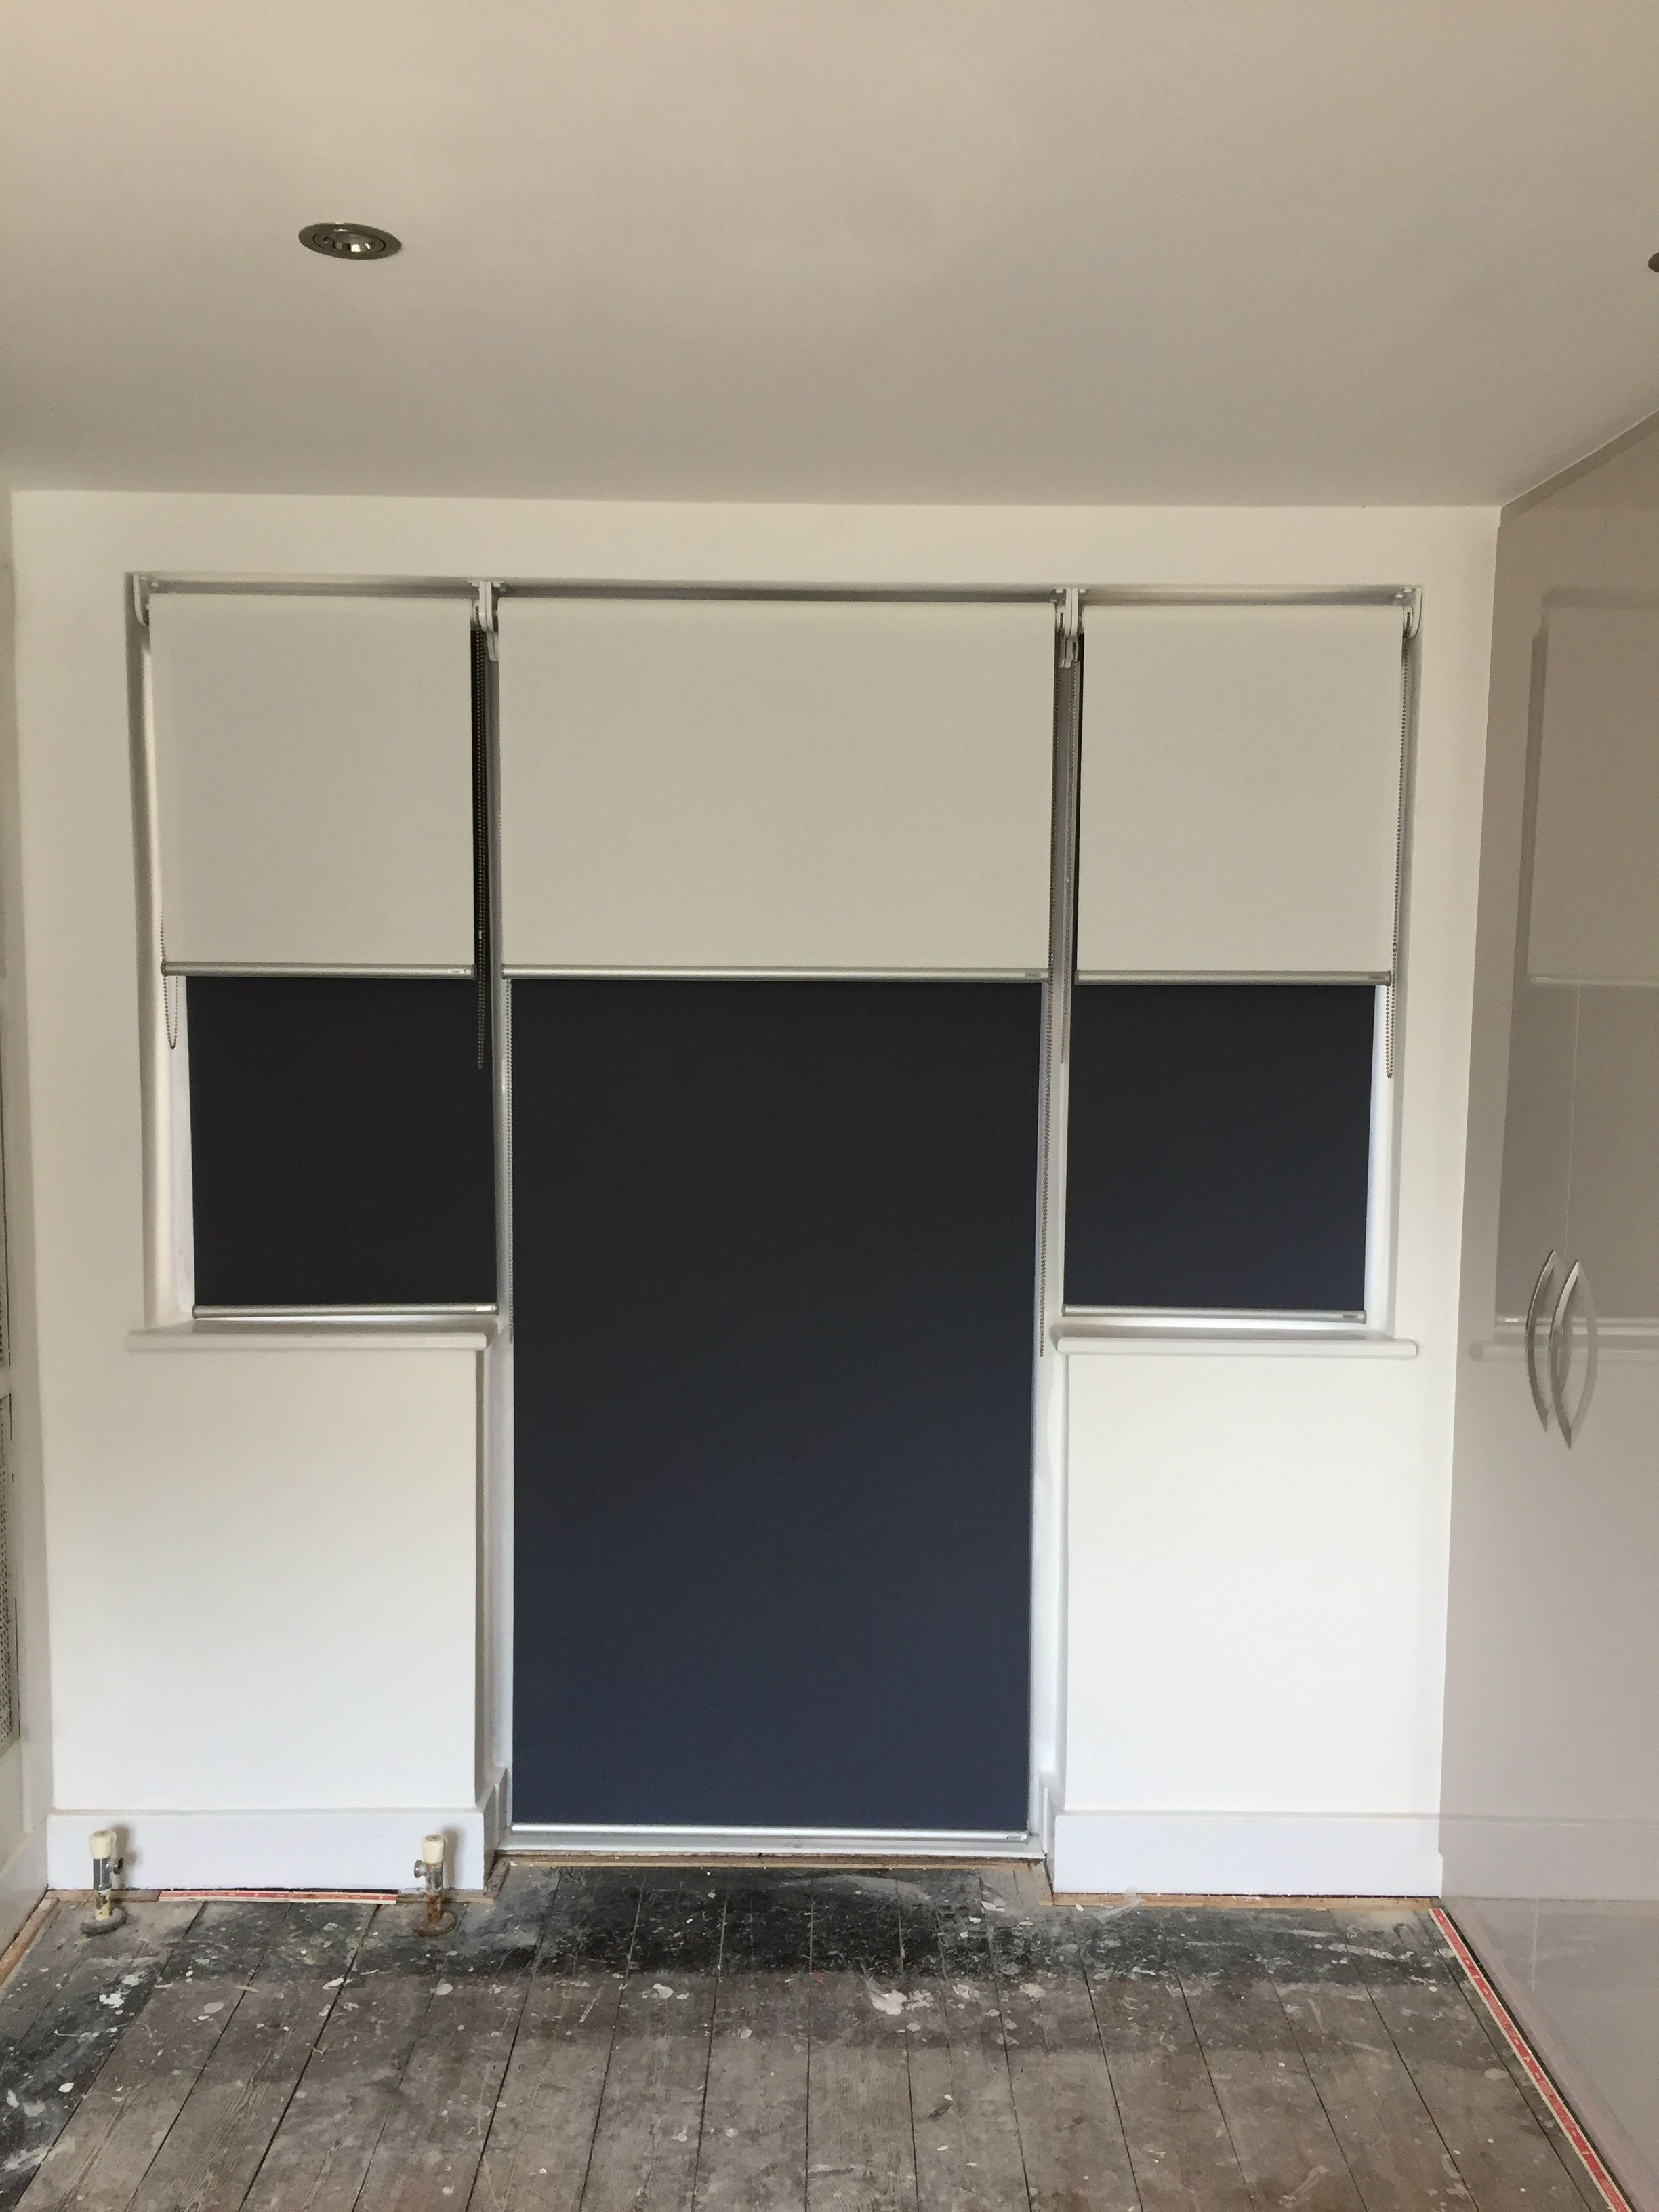 Doubledual roller blinds blackout and sunscreen roller blinds